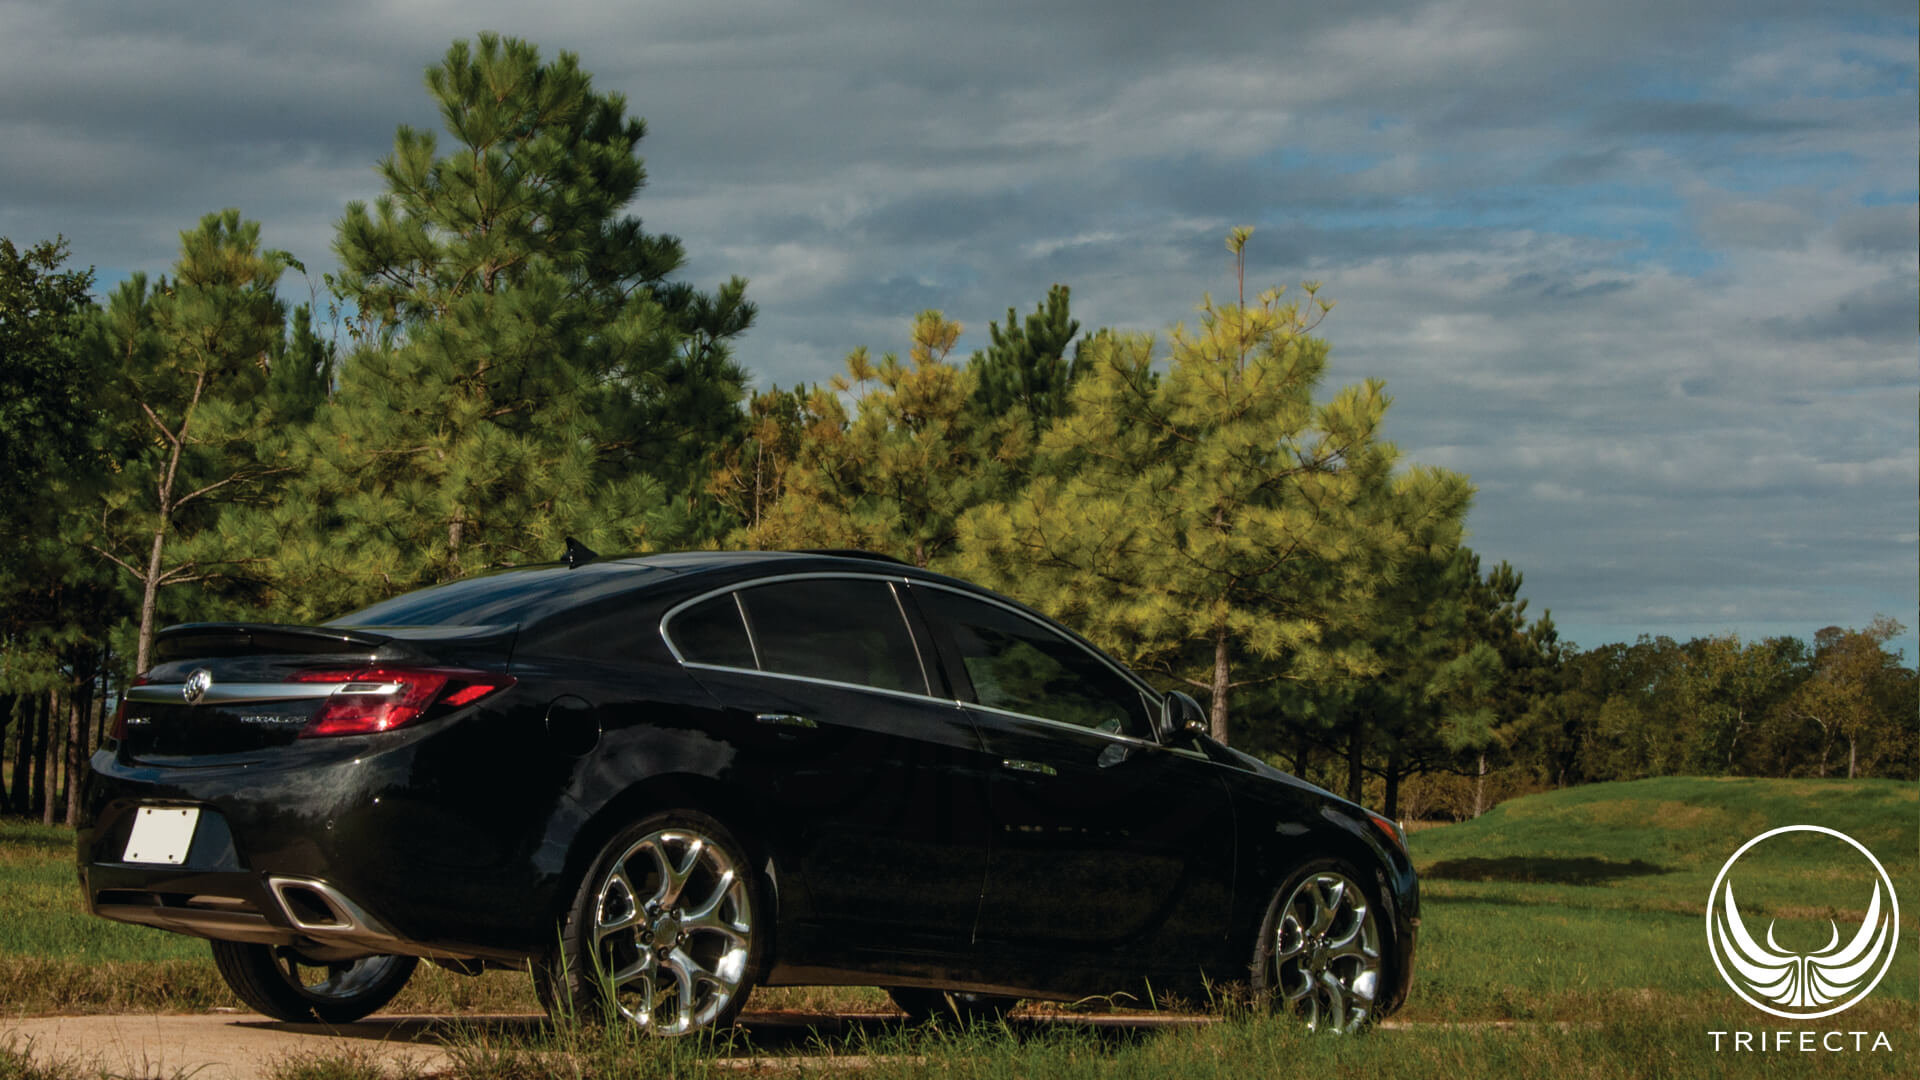 Product Review: 2014--2017 Buick Regal - 2.0L Turbo - Advantage